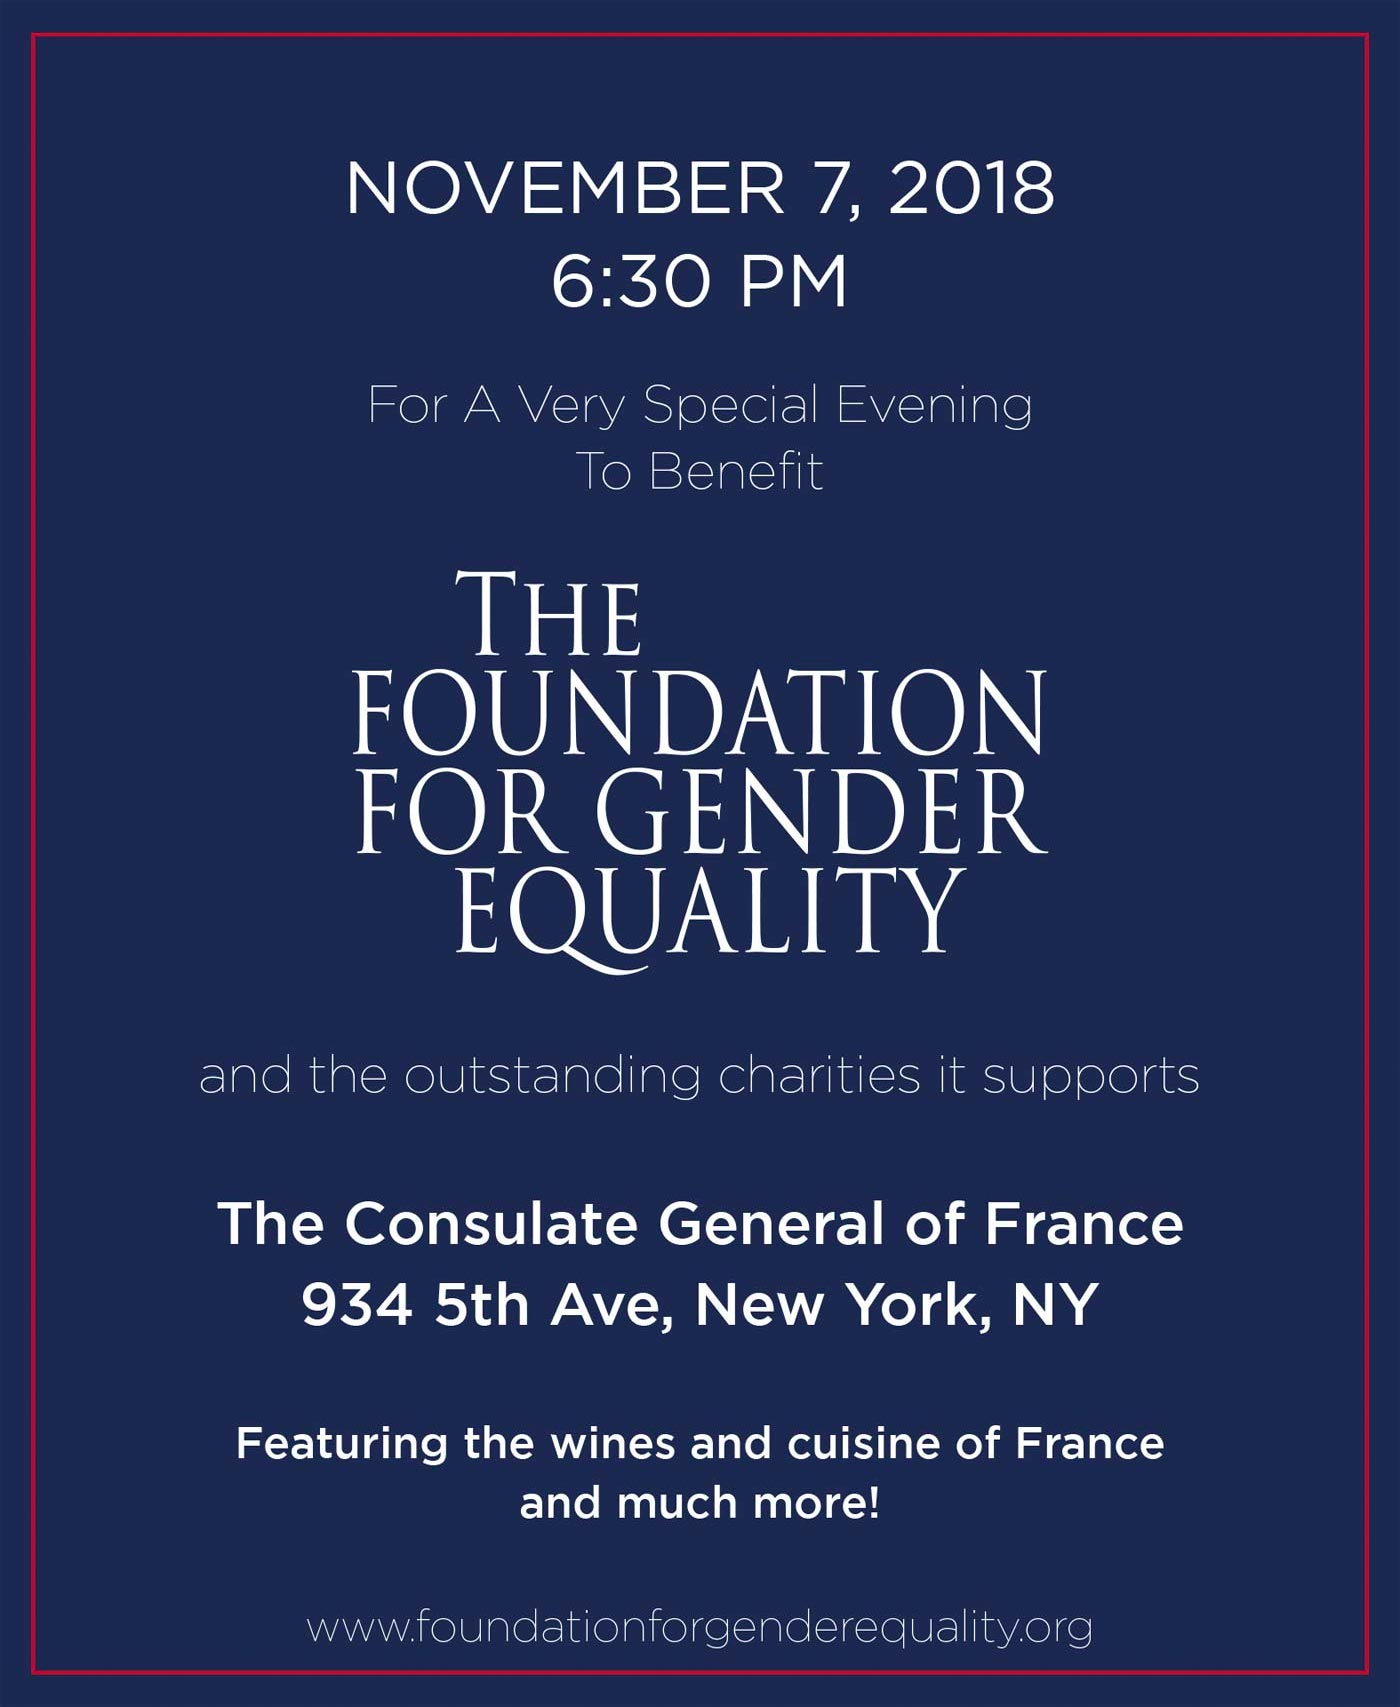 Save the Date: Nov. 7, 2018 For a Very Special Event